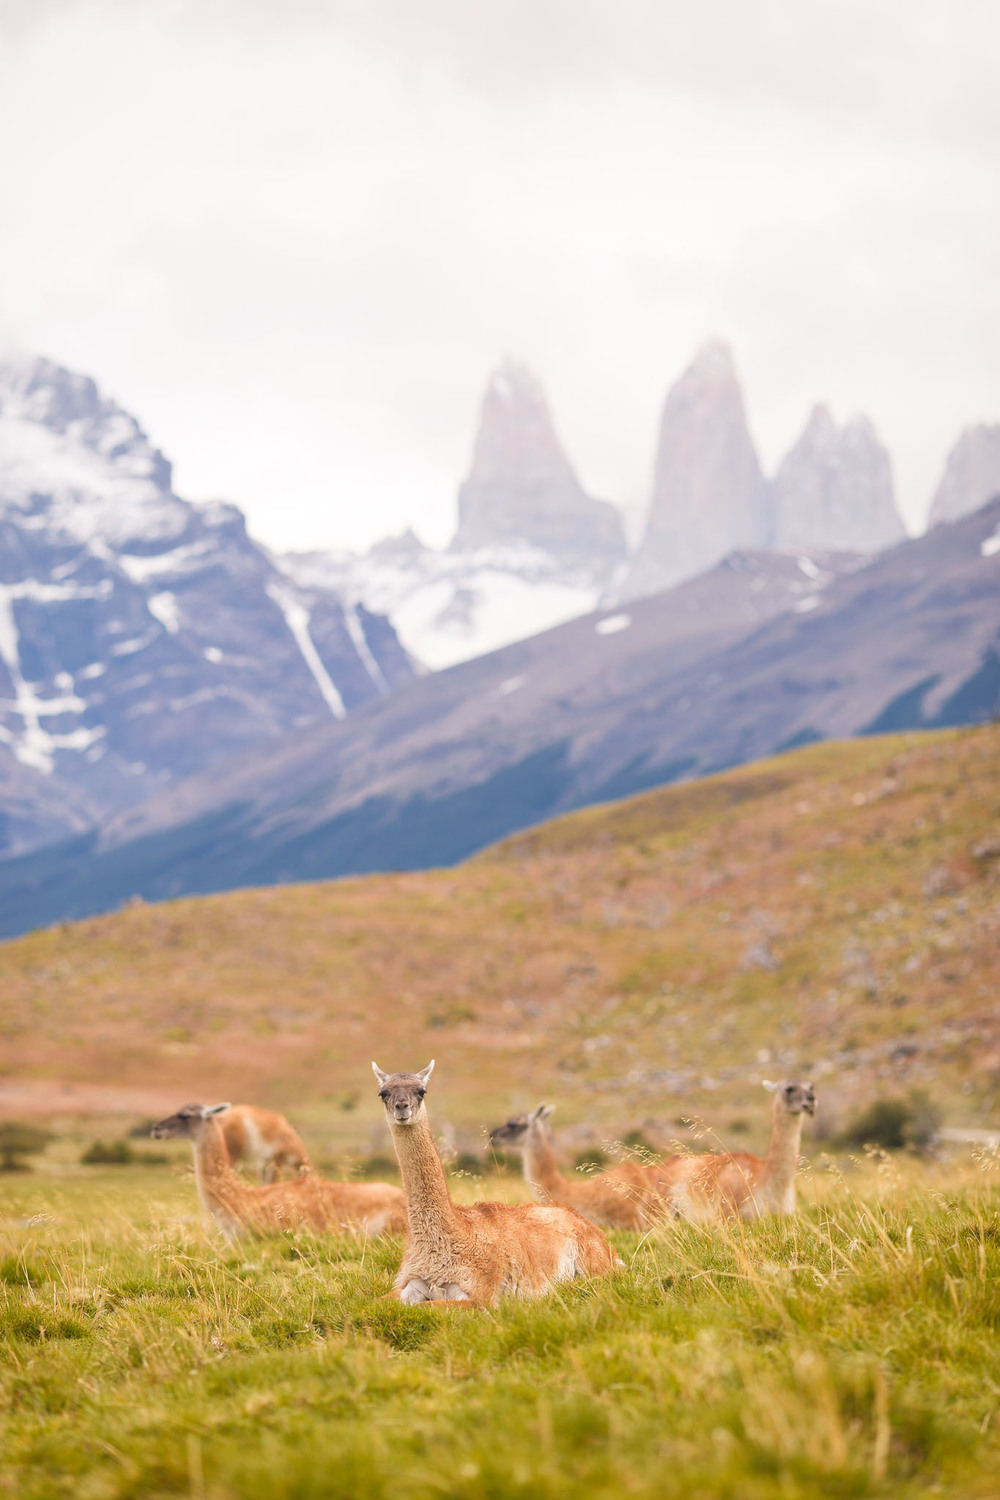 Wedding-Travellers-Overlanding-Destination-Wedding-Chile-Torres-del-Paine-guanaco-lama-llama-tres-torres